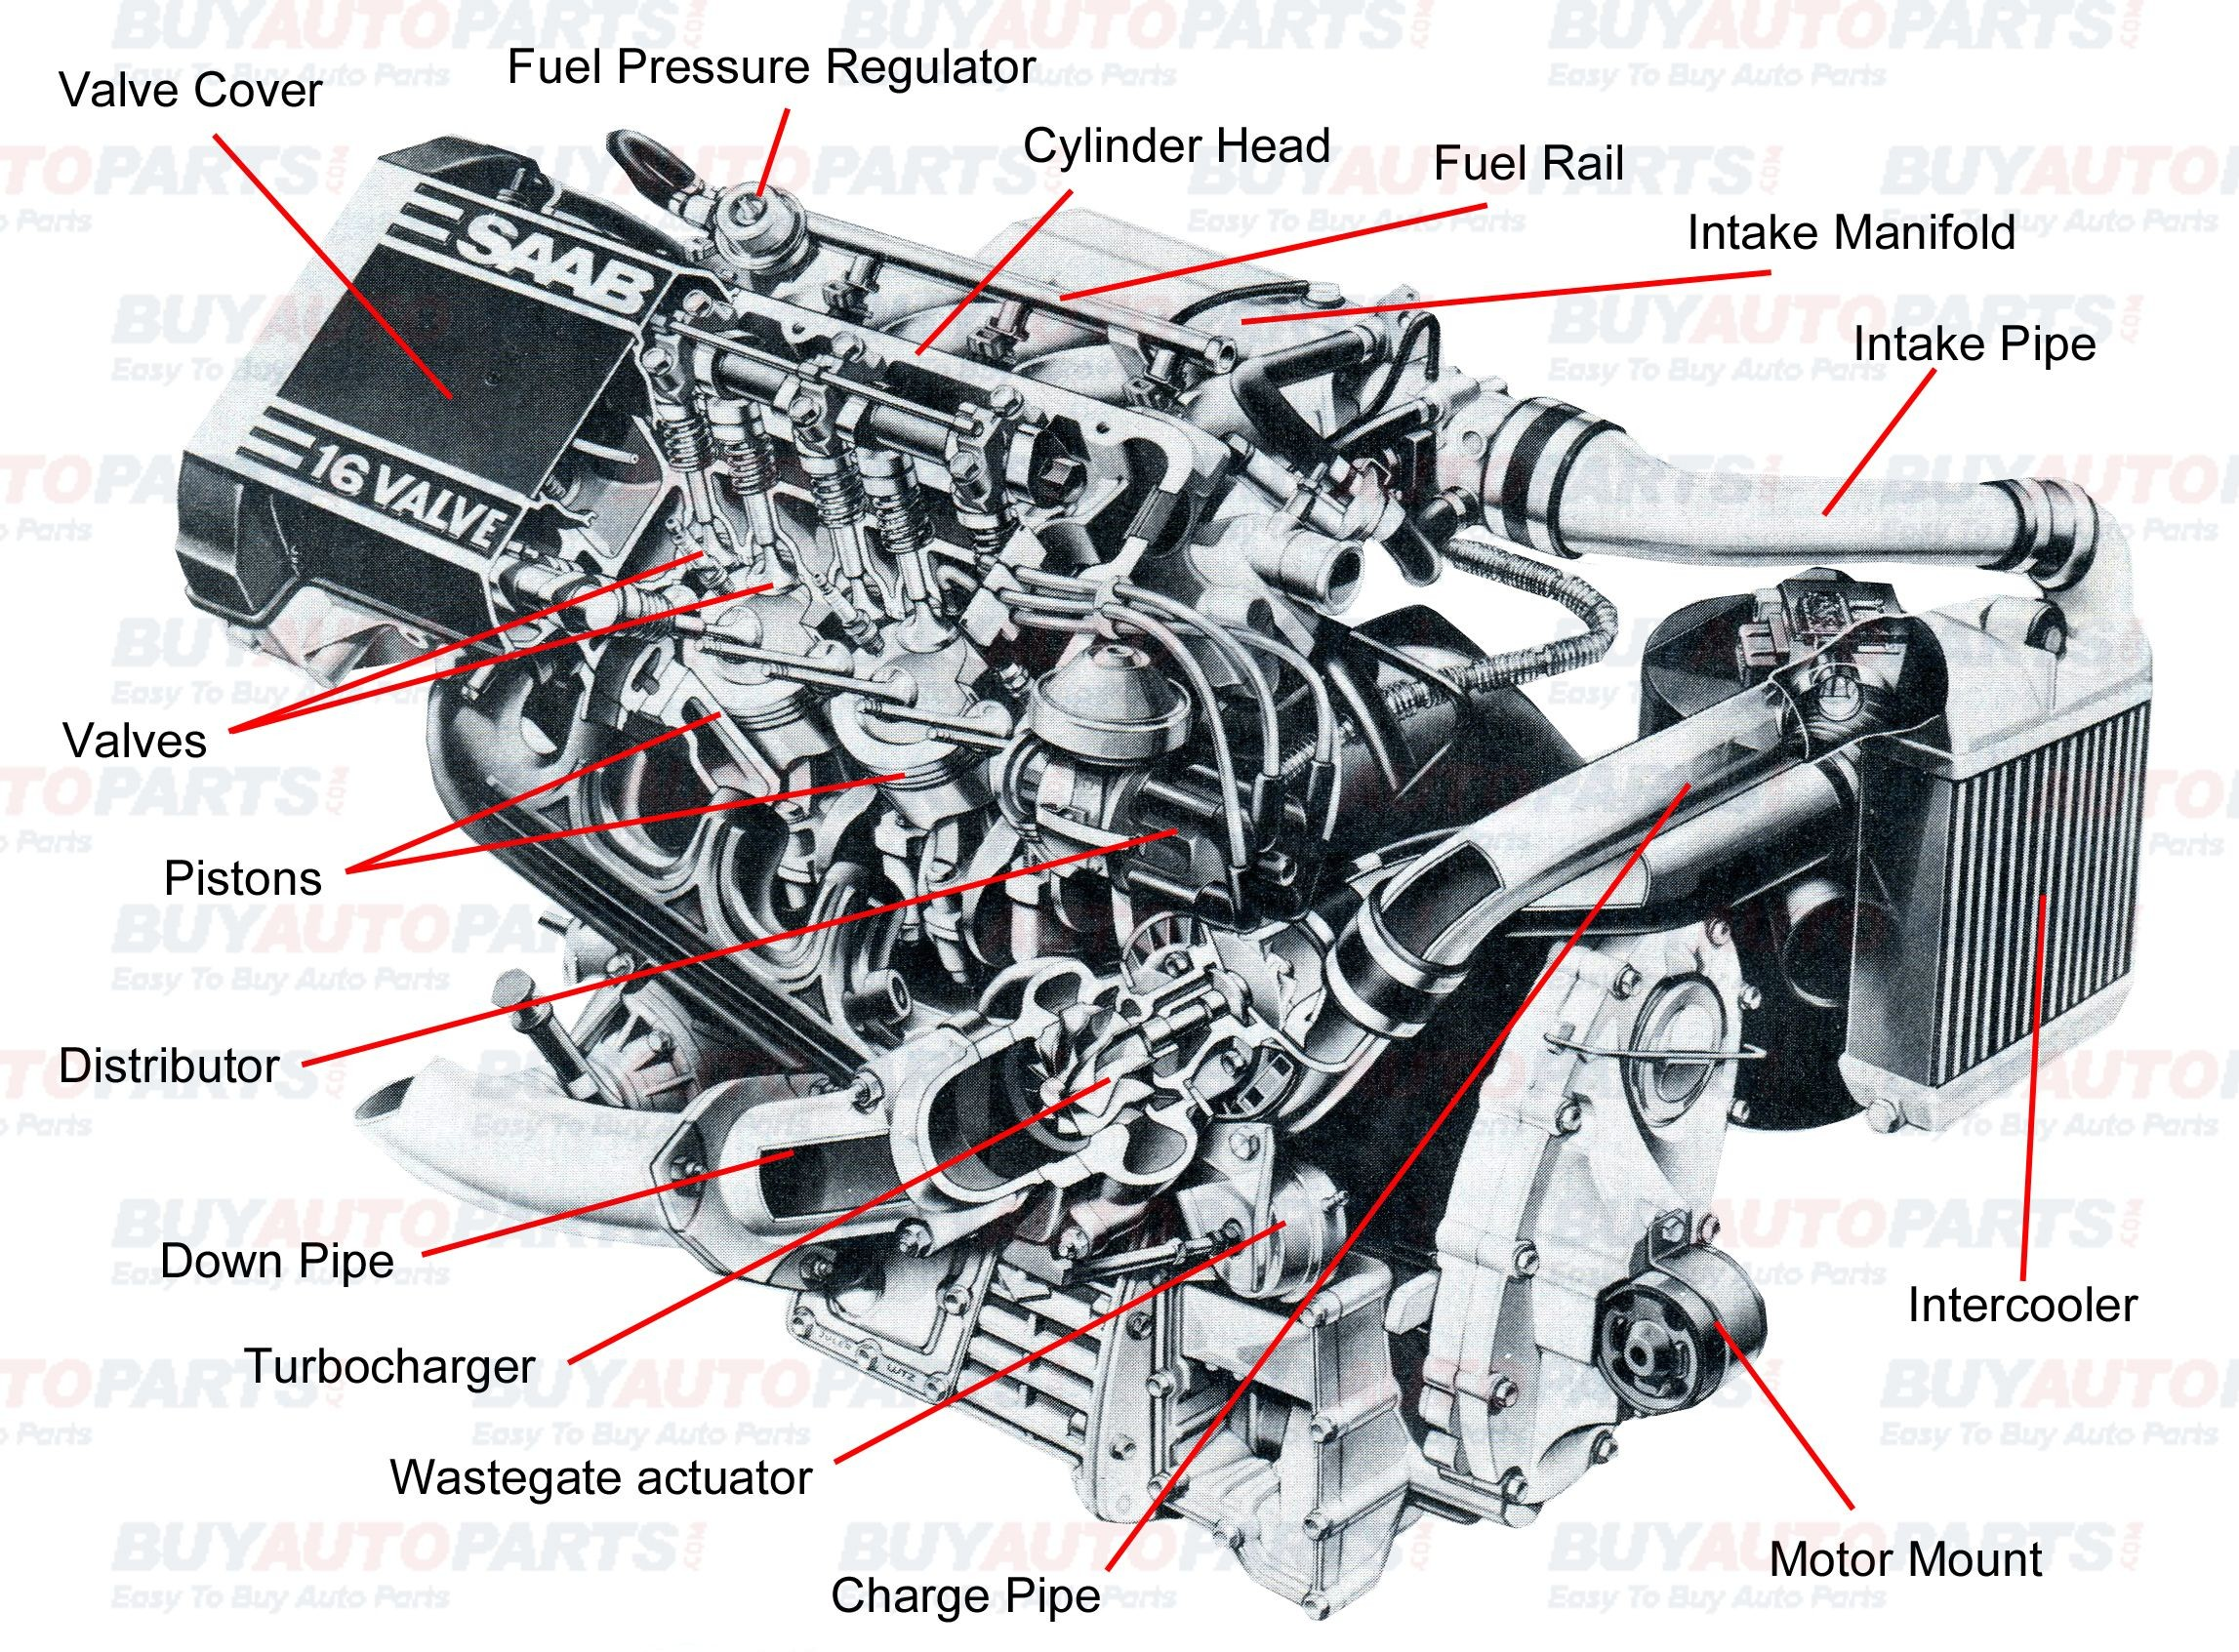 Diagram Of Engine Parts Pin by Jimmiejanet Testellamwfz On What Does An Engine with Turbo